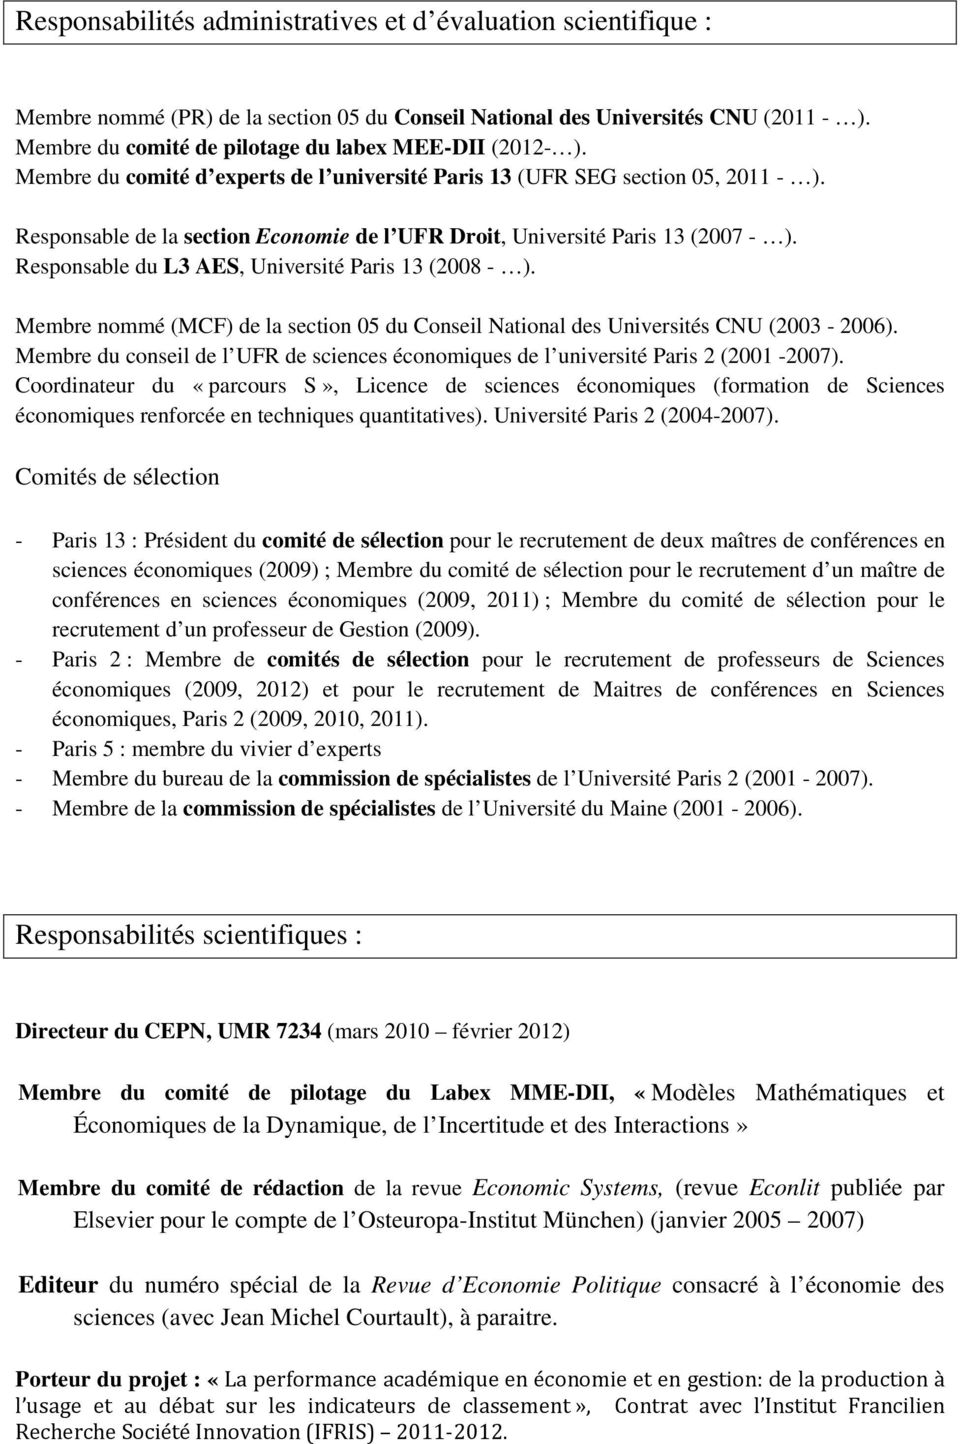 Responsable de la section Economie de l UFR Droit, Université Paris 13 (2007 - ). Responsable du L3 AES, Université Paris 13 (2008 - ).